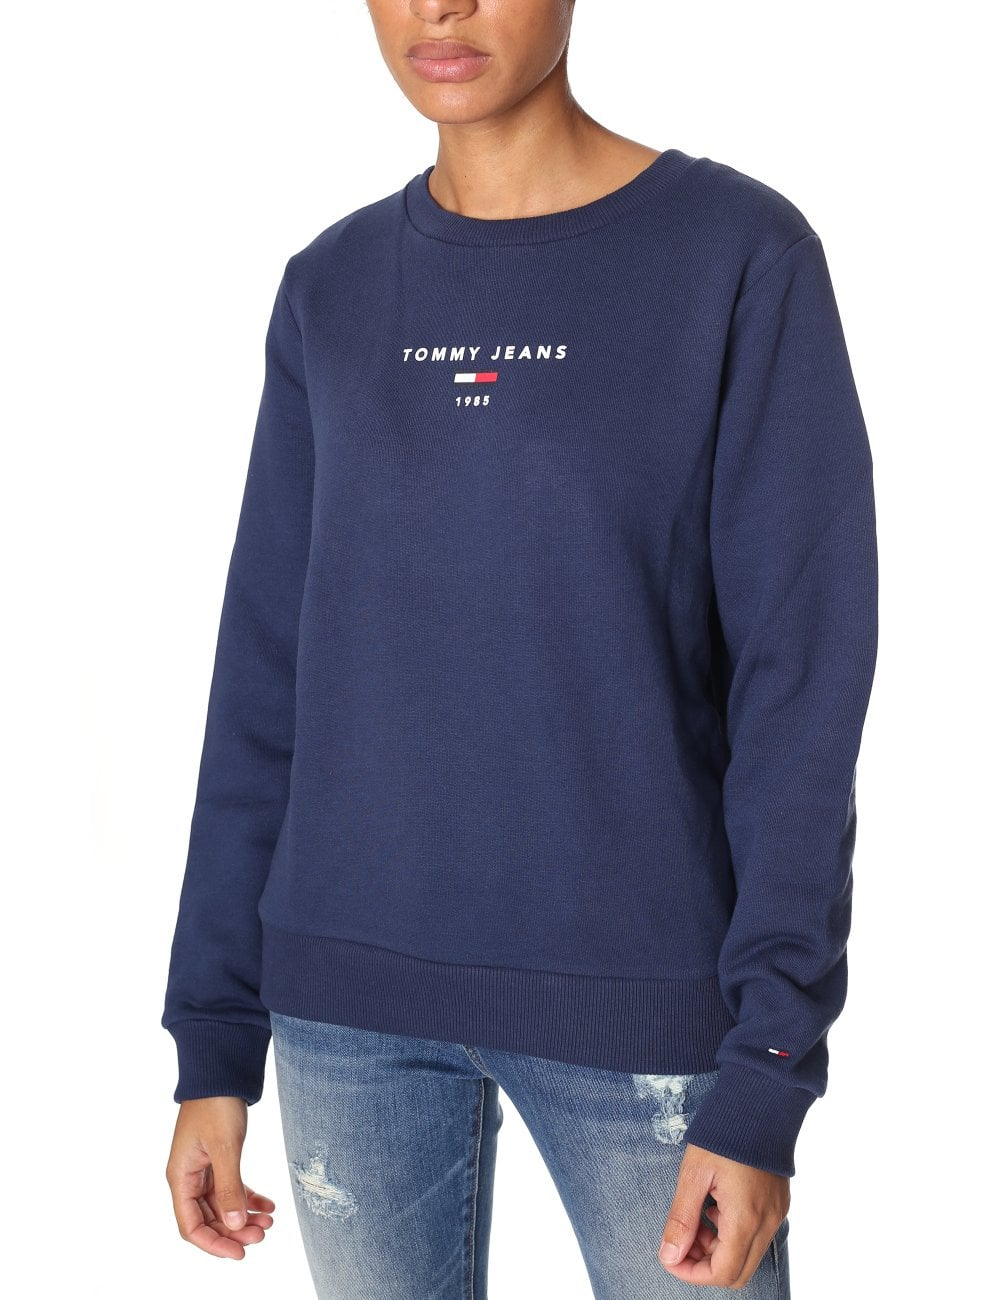 c6d80939d Home  Tommy Hilfiger Women s Long Sleeve Clean Logo Sweatshirt. Tap image  to zoom. Women  039 s Long Sleeve Clean Logo Sweatshirt